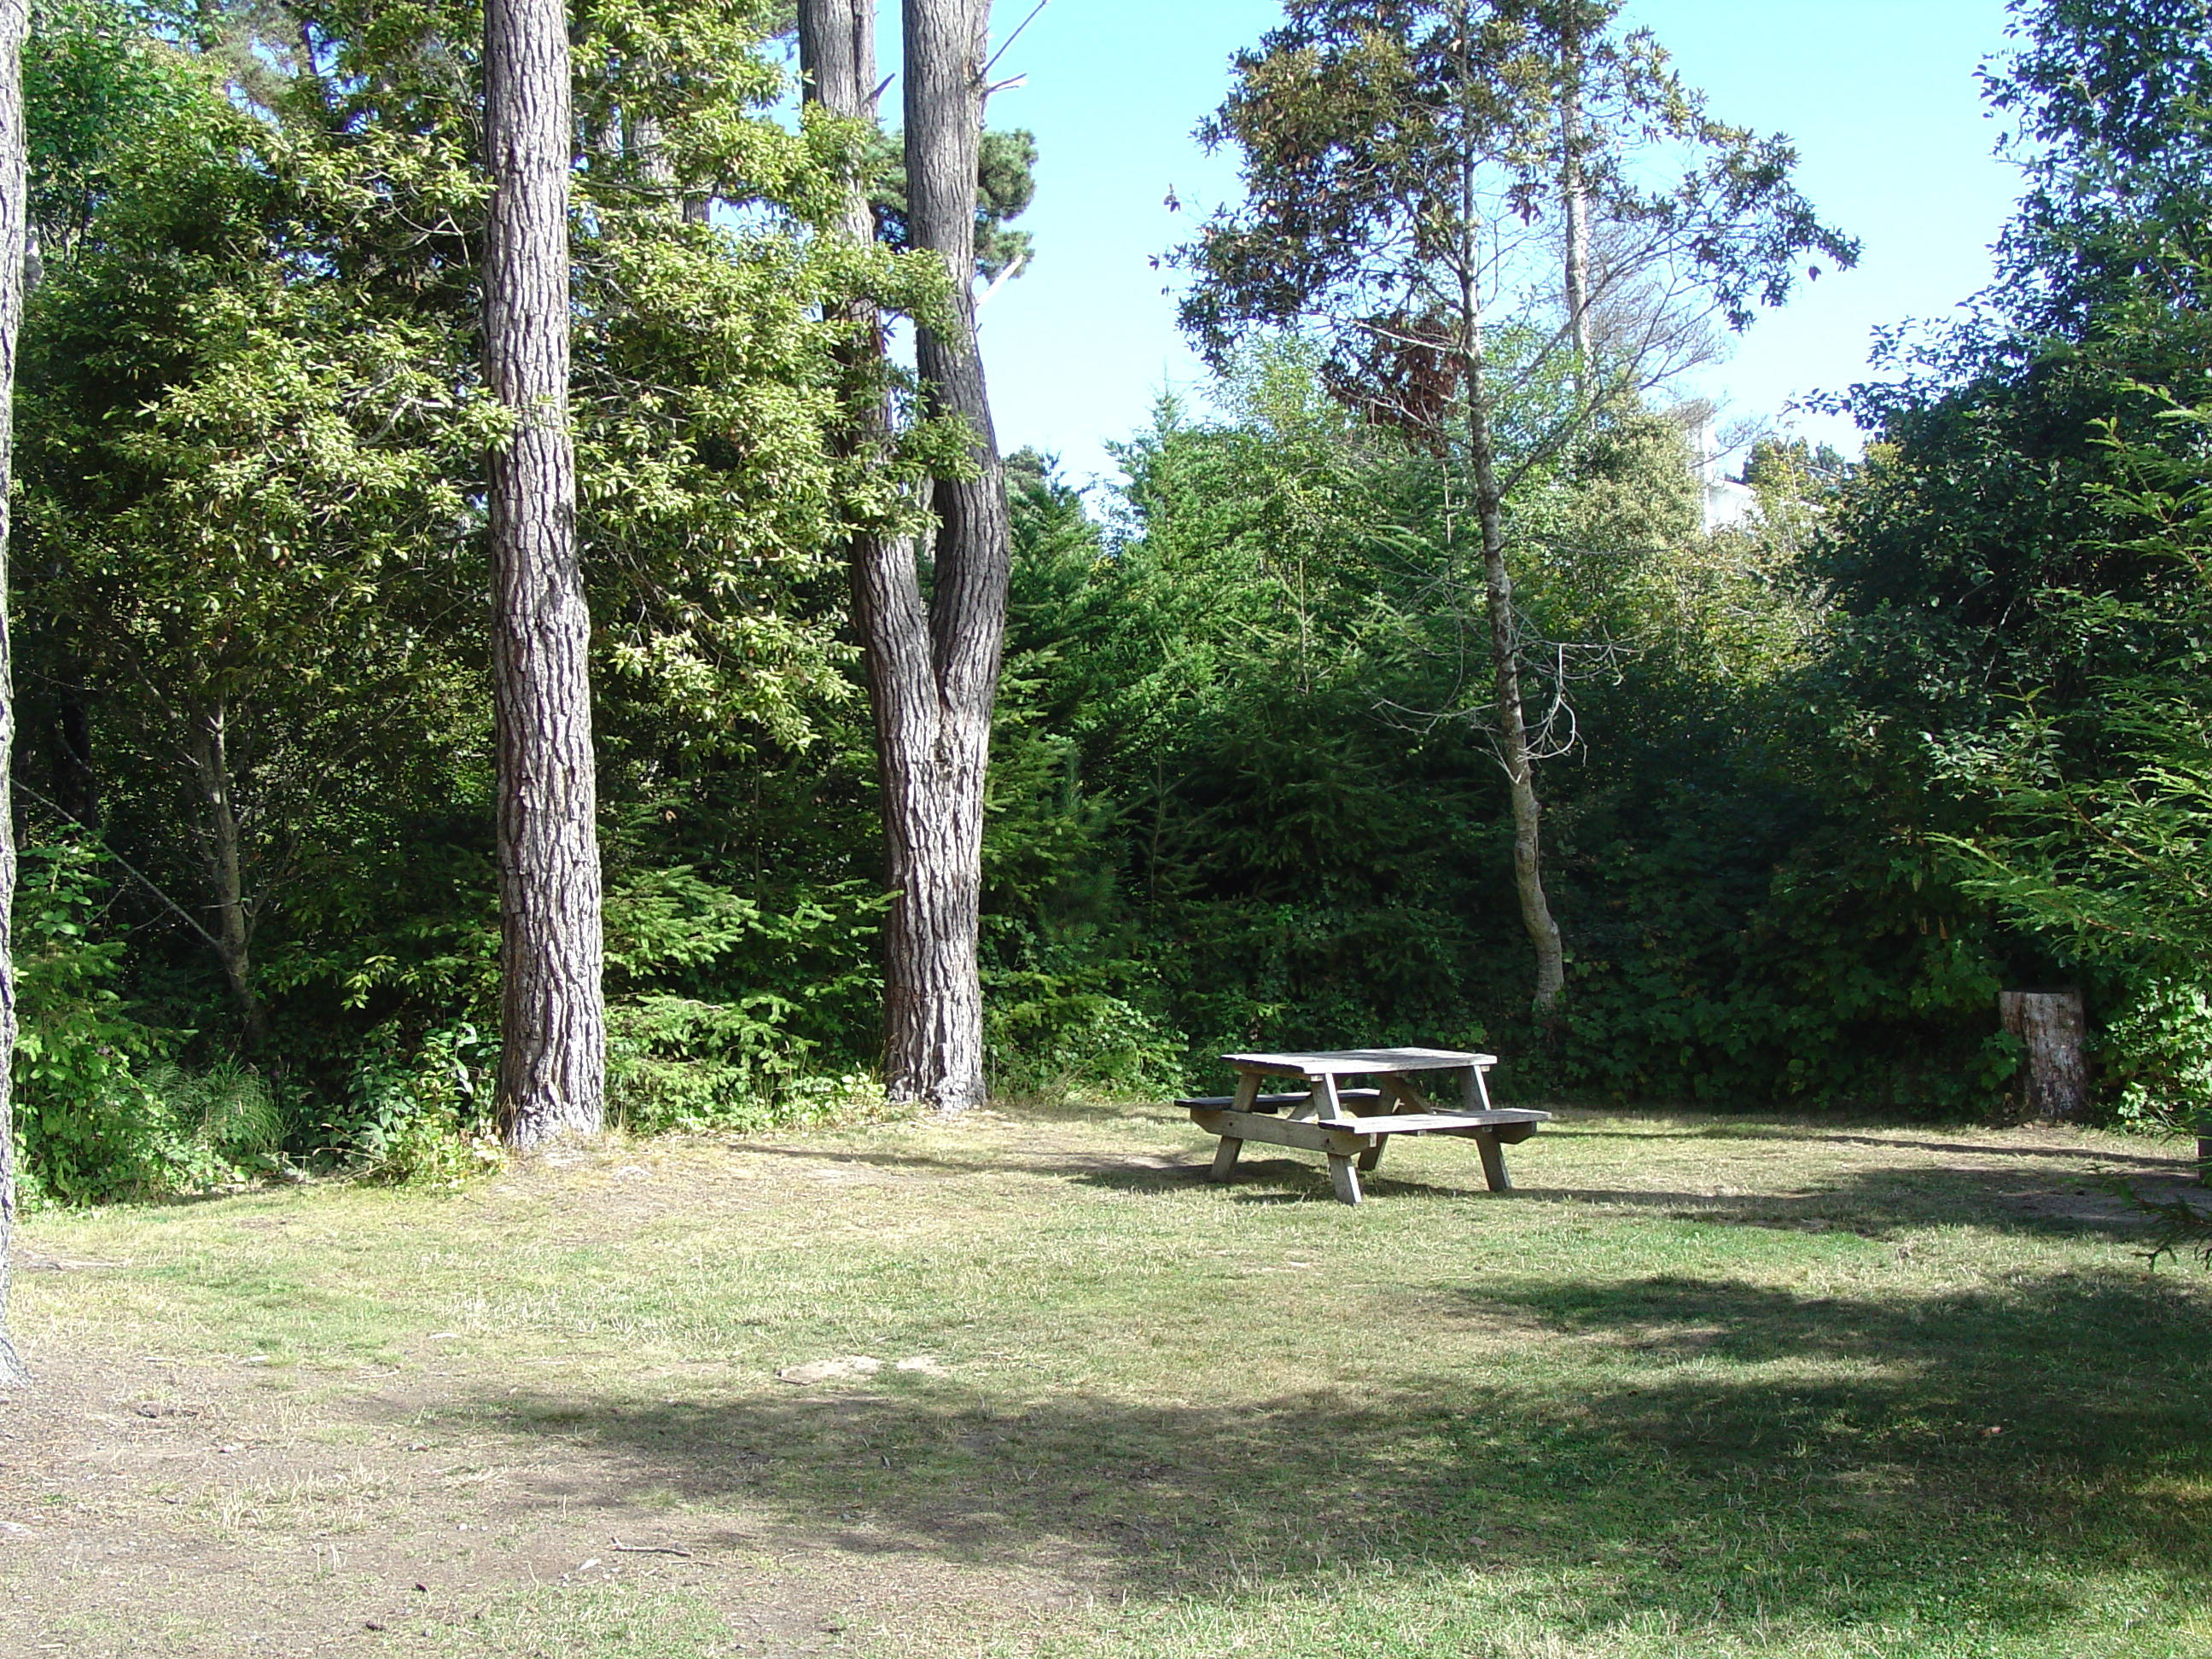 Pomo rv park and campground contacts for Camping grounds with cabins